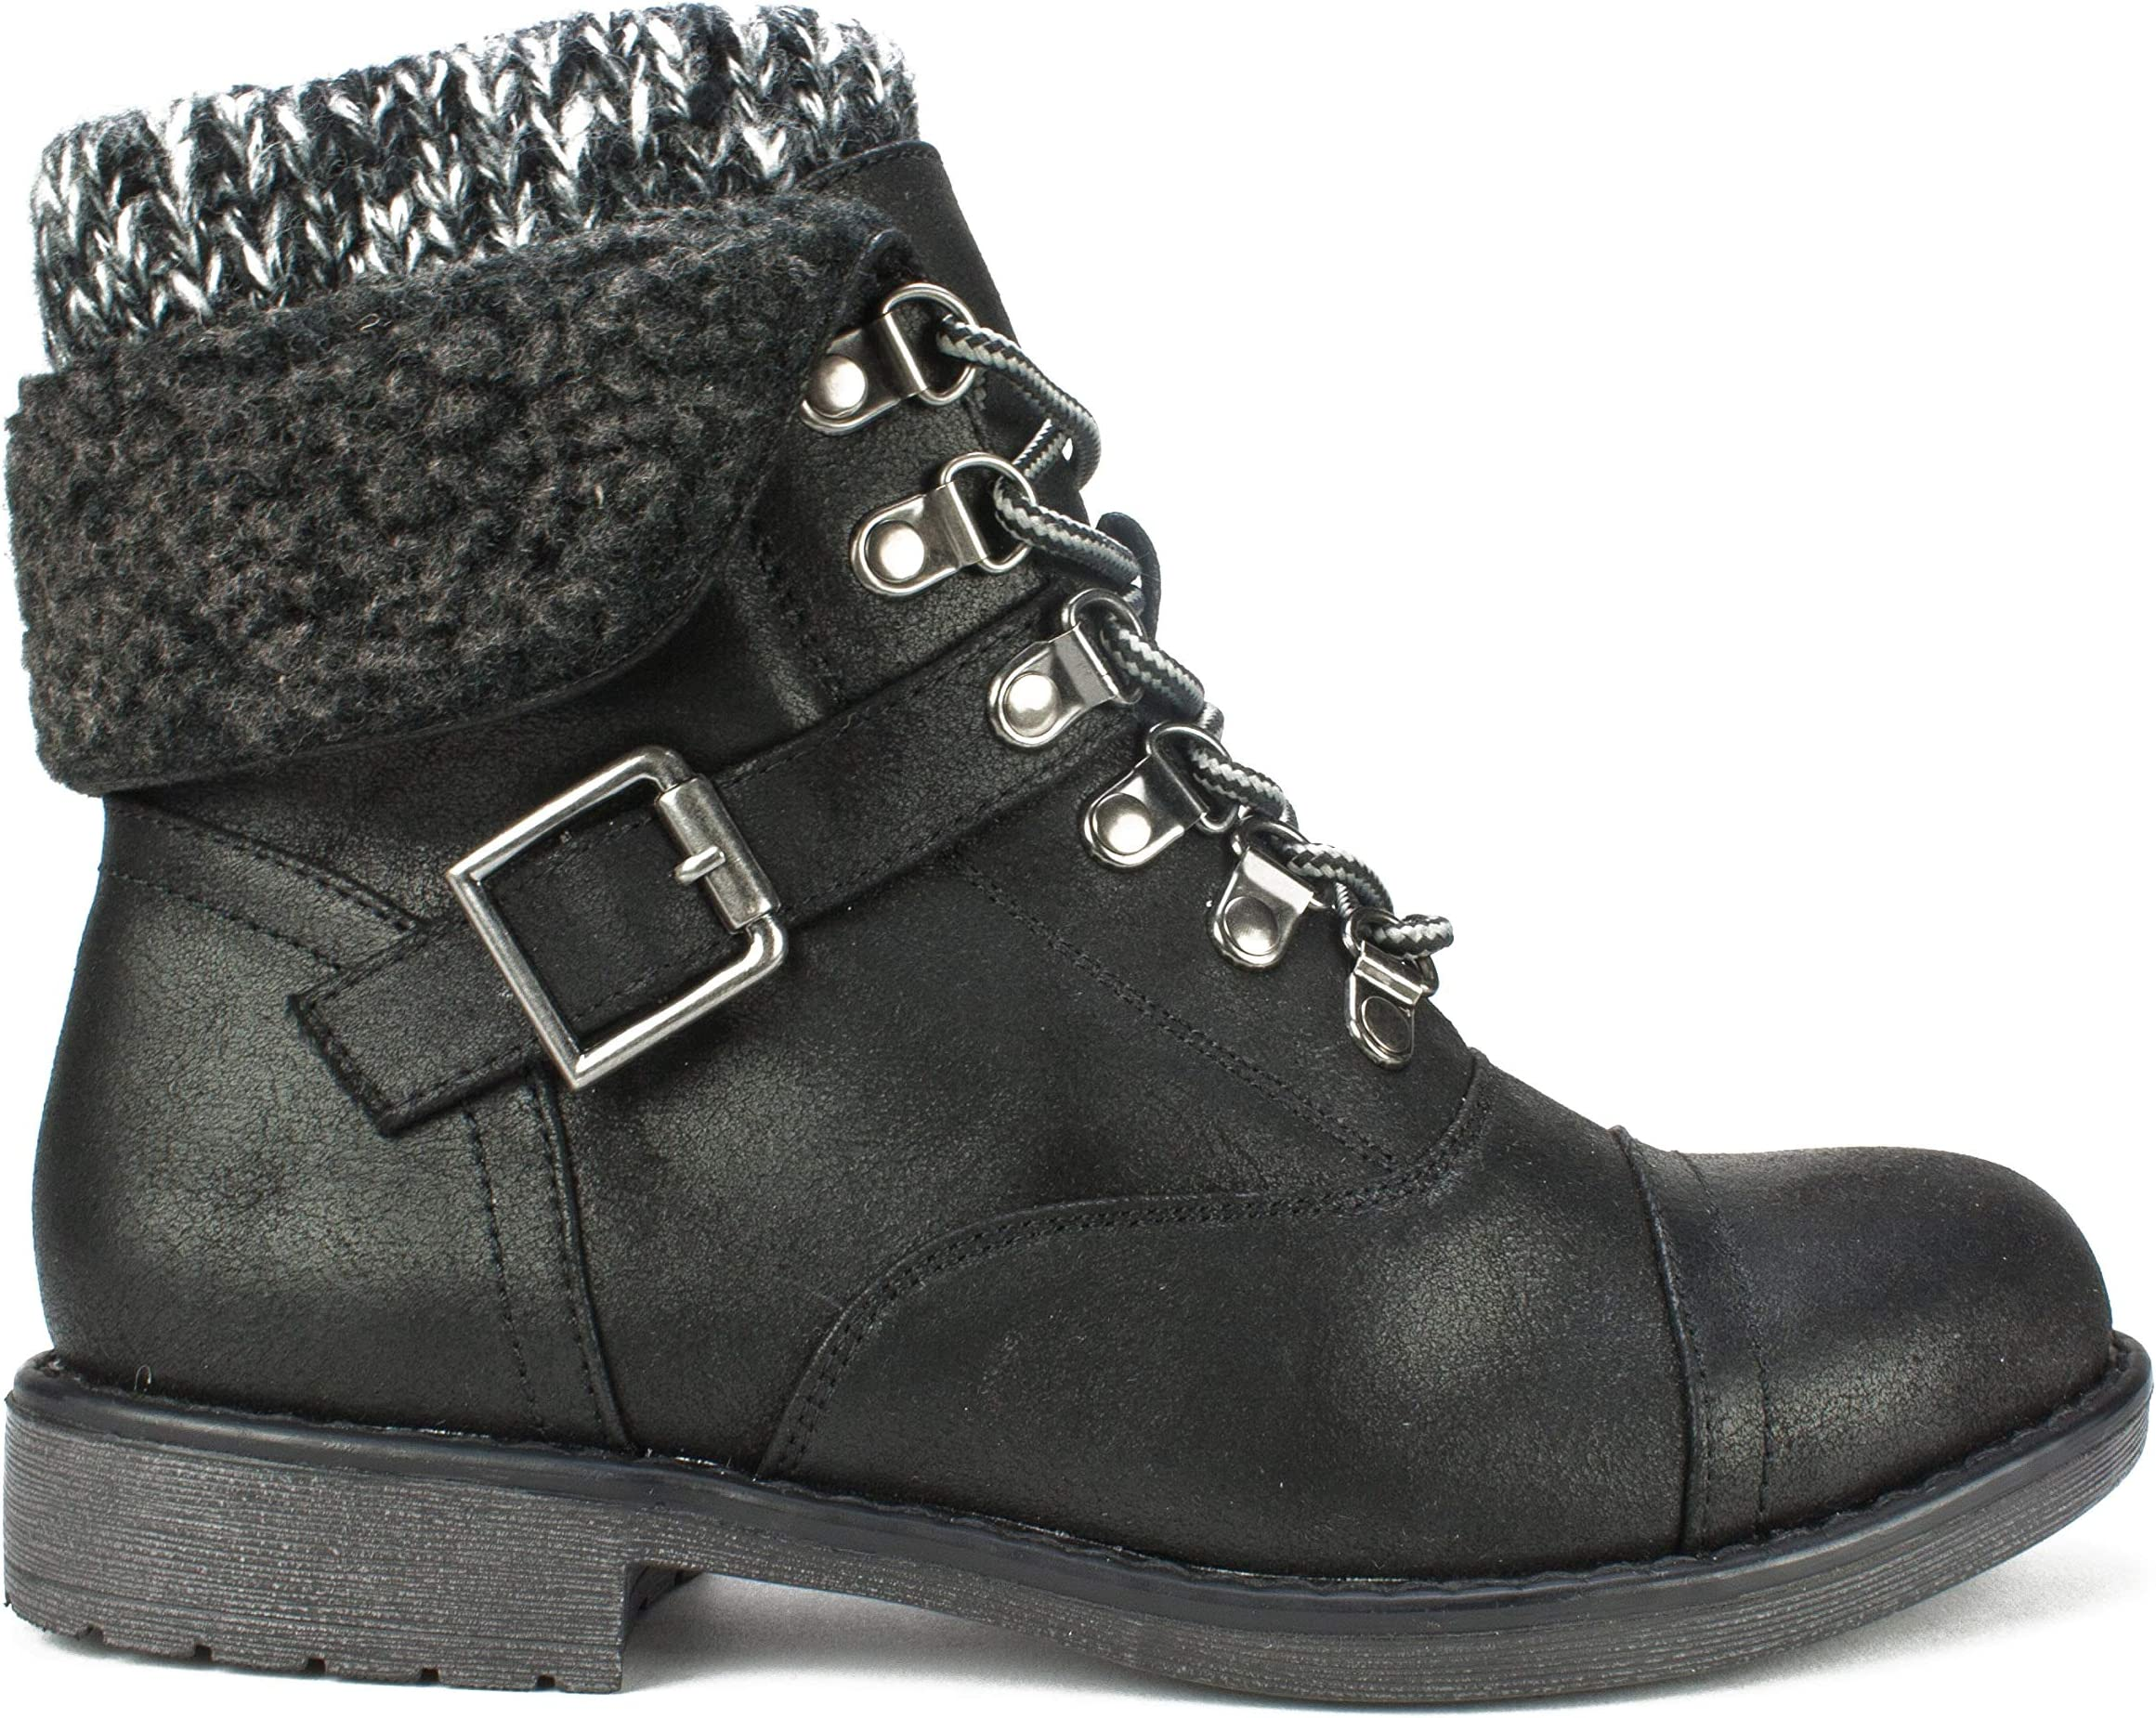 Cliffs by White Mountain Daley | Women's shoes | 2020 Newest